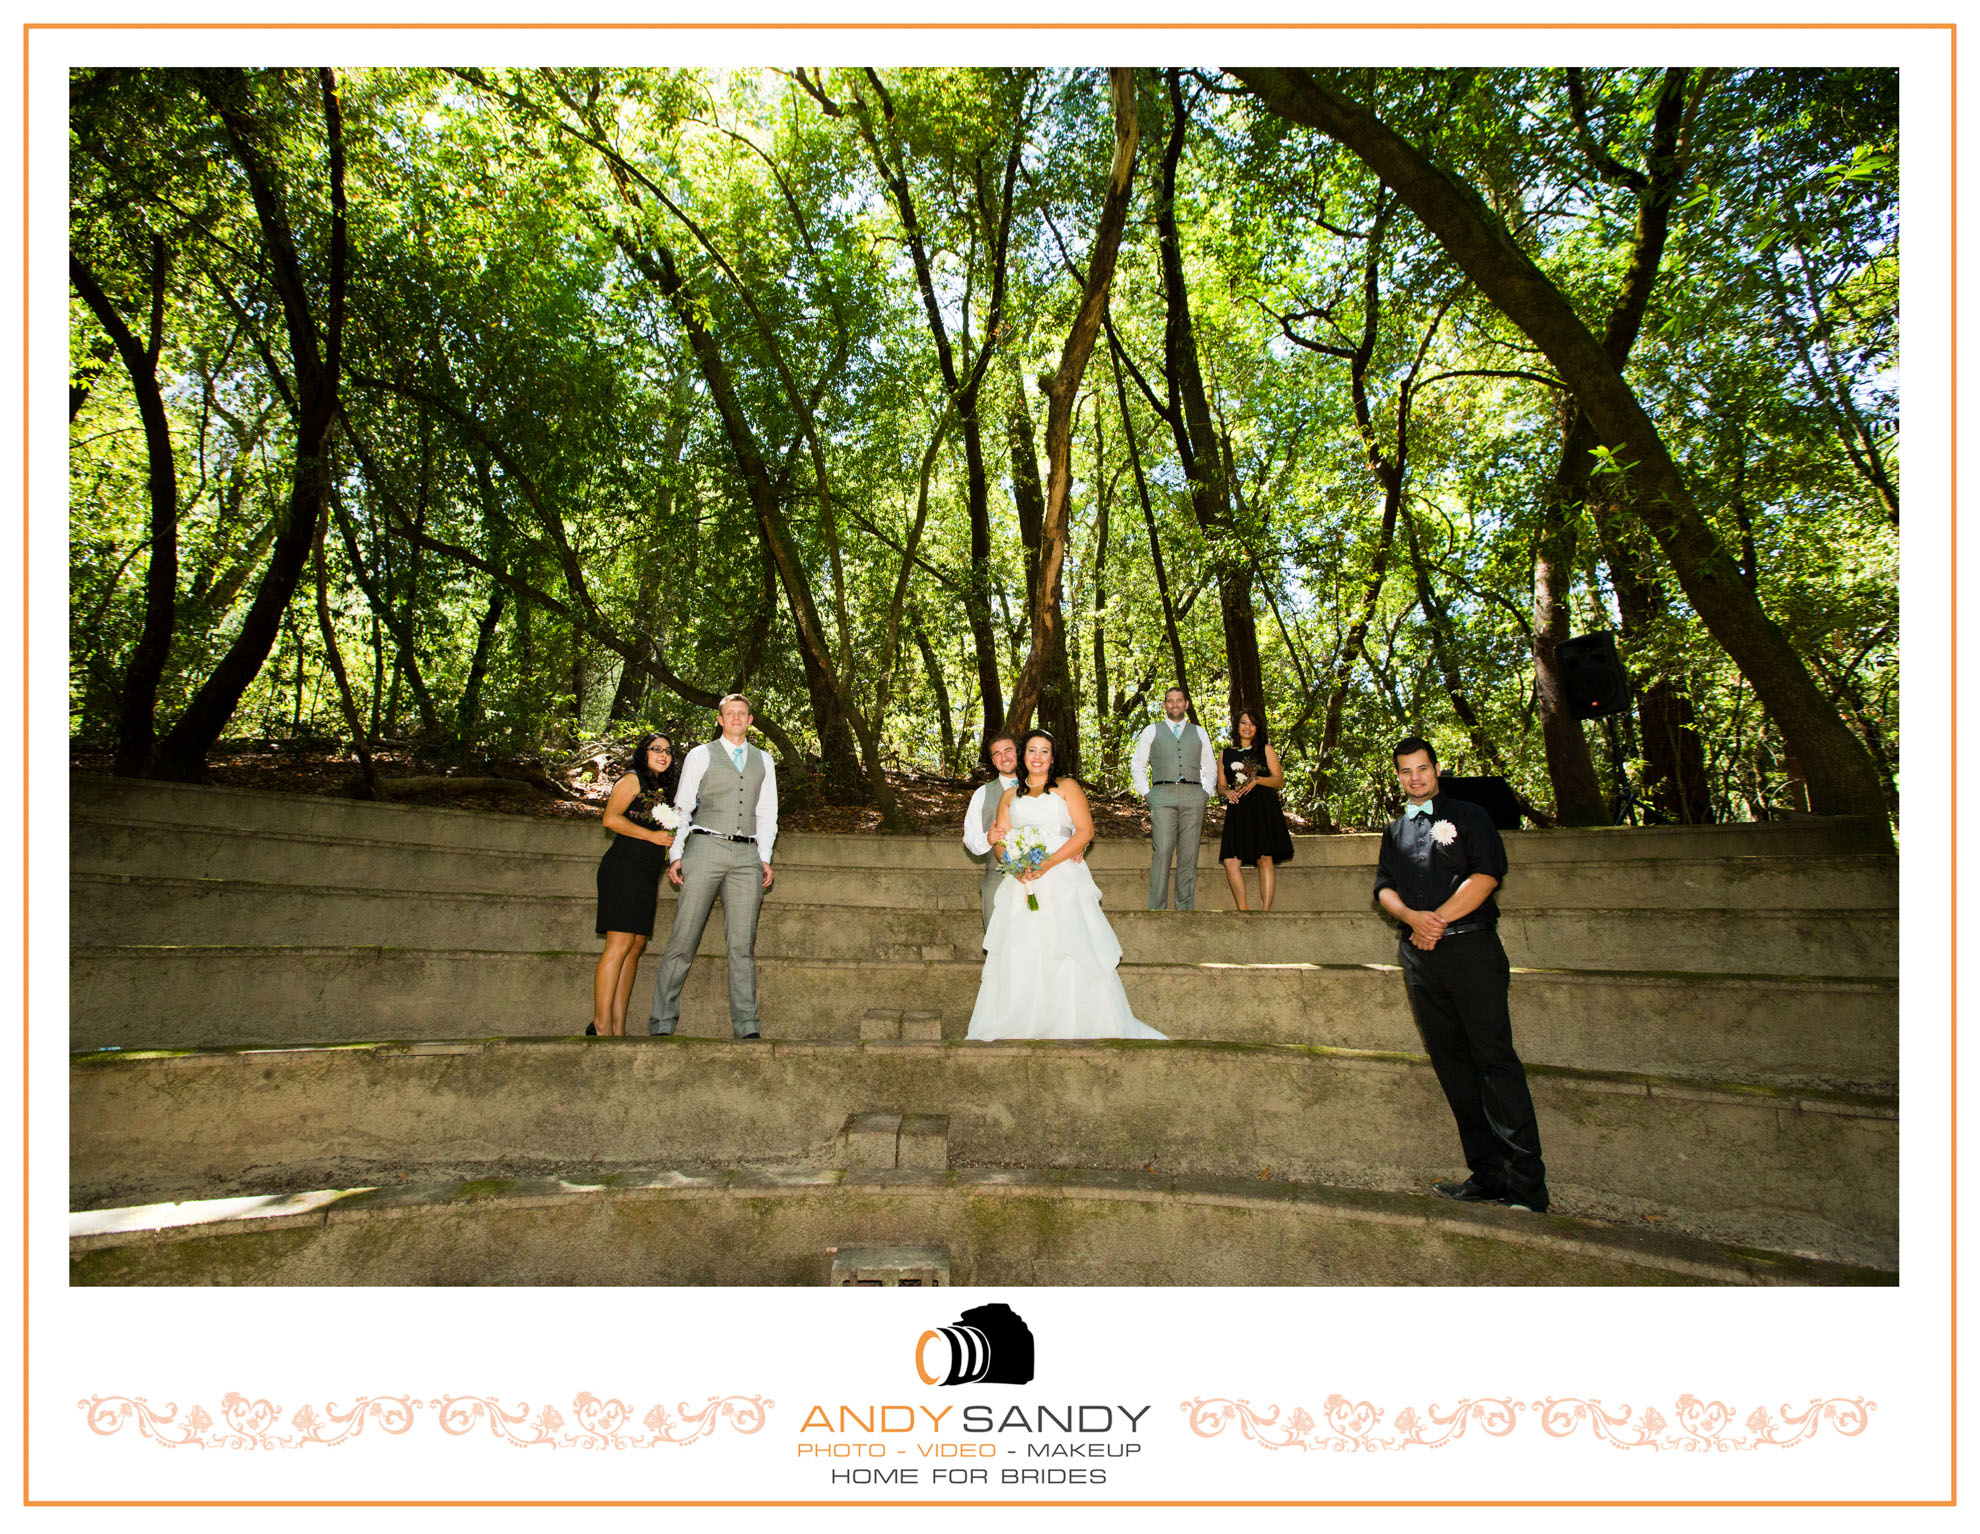 Griffith Woods Santa Rosa Wedding Venue Sonoma County Outdoor Wedding In  The Redwoods Forest Wedding